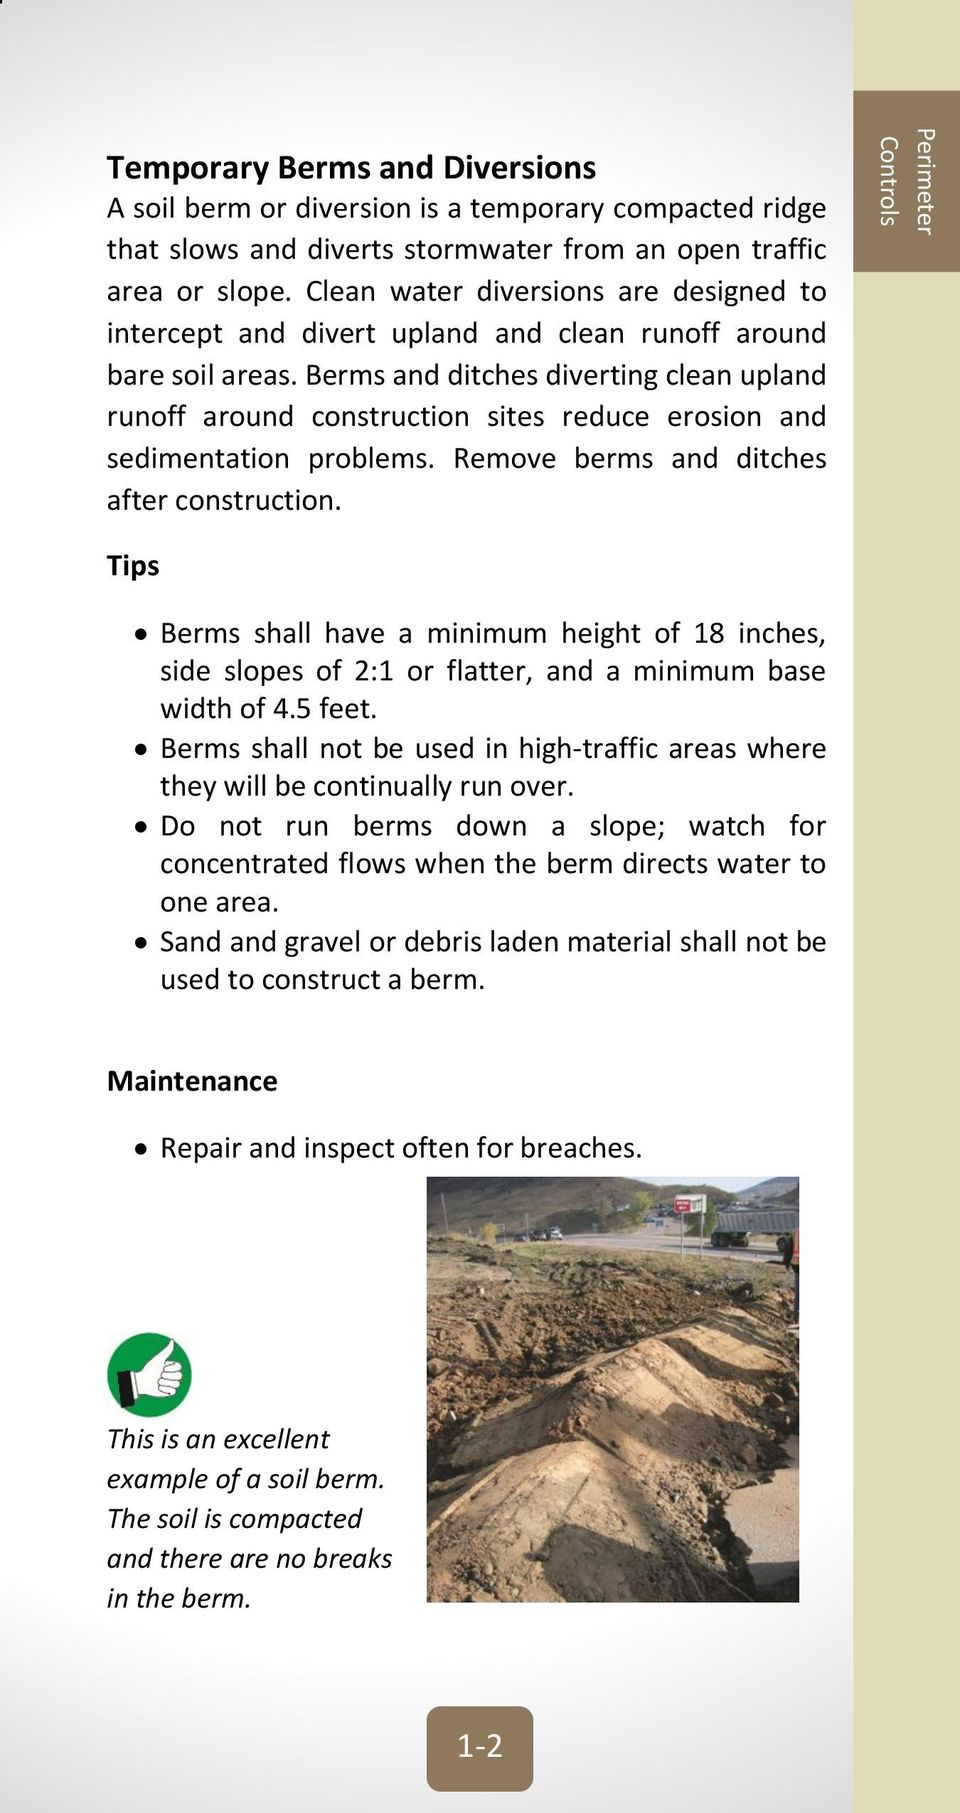 Berms and ditches diverting clean upland runoff around construction sites reduce erosion and sedimentation problems. Remove berms and ditches after construction.